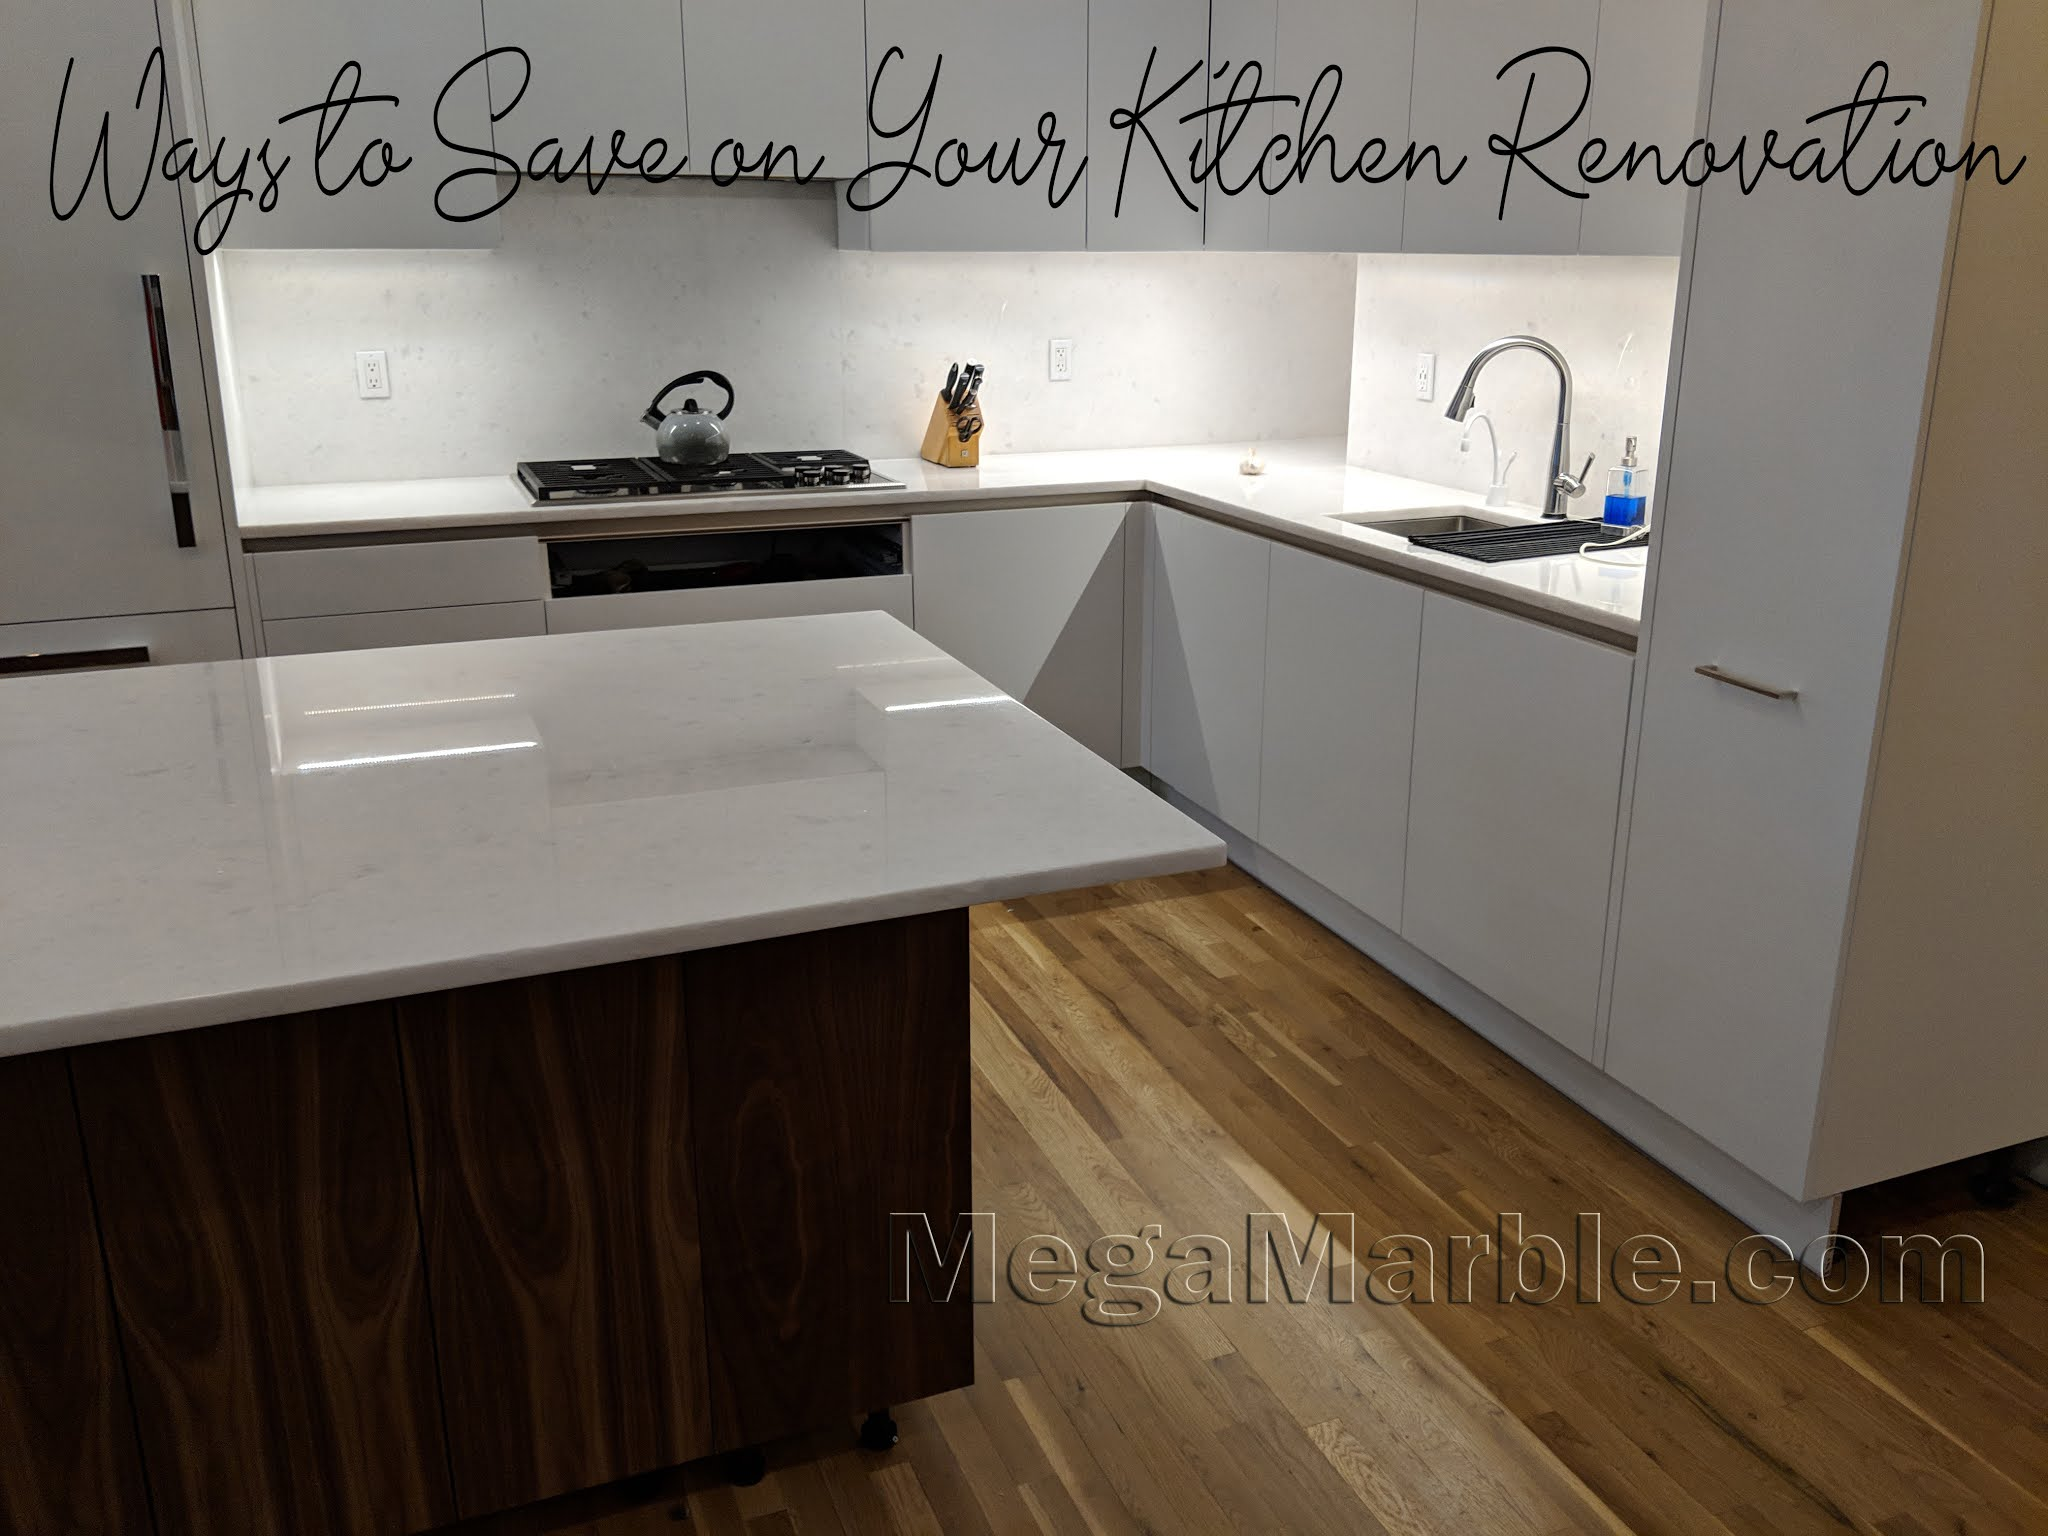 Kitchen remodeling on a budget NYC